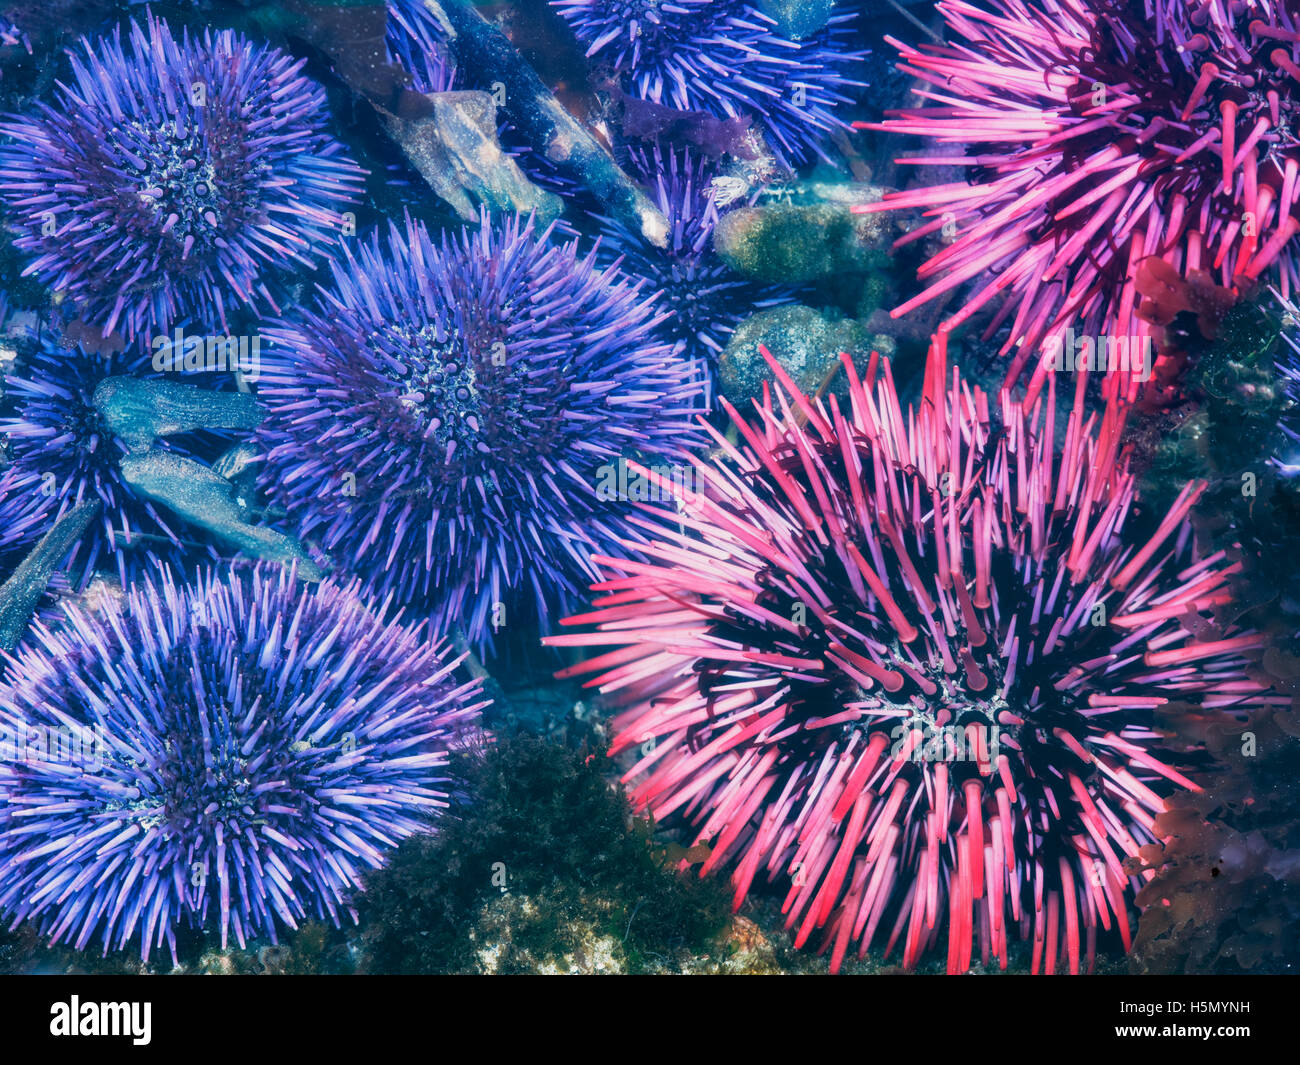 Red and purple sea urchins at extreme minus tide. Yaquina Head Outstanding Natural Area, Oregon - Stock Image